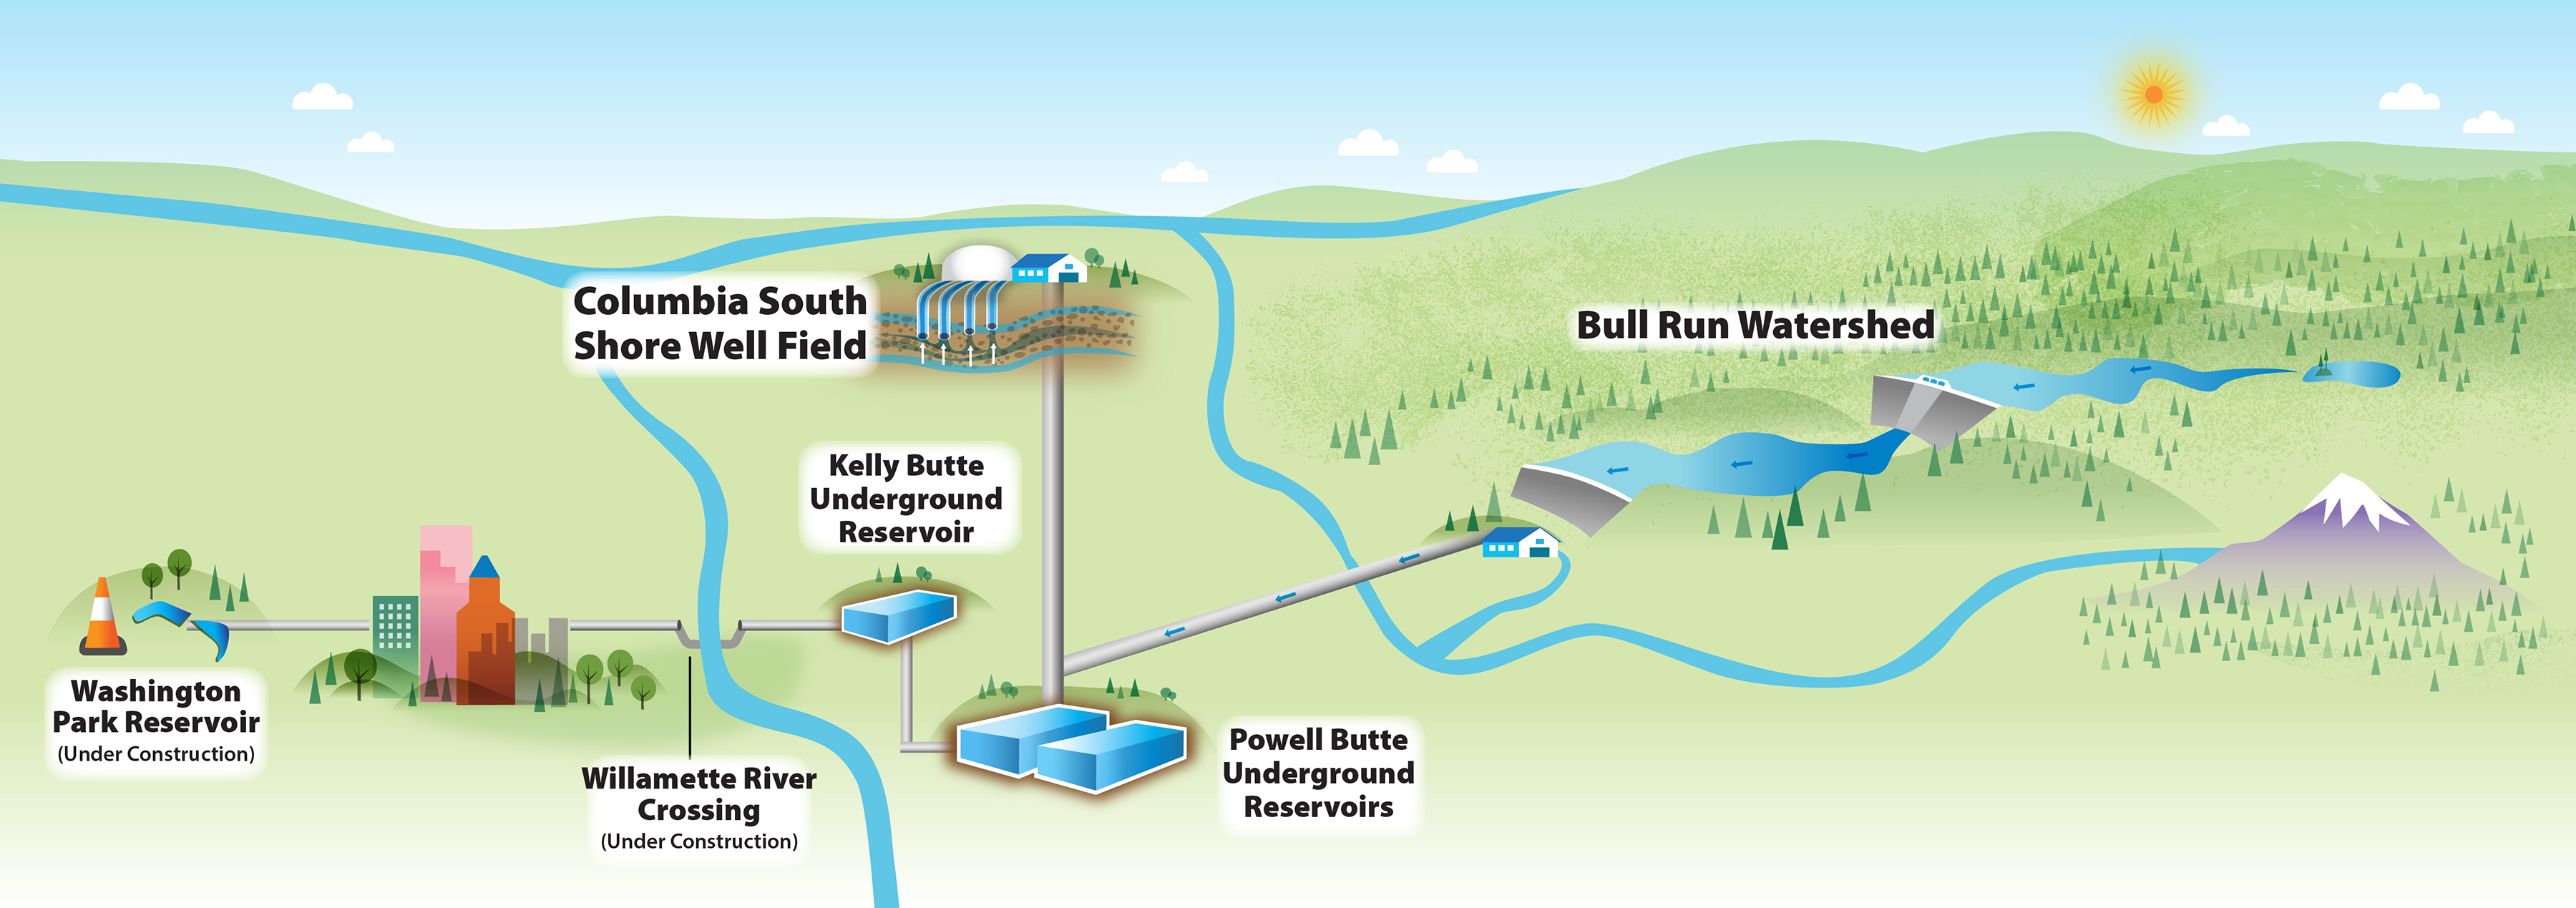 An illustration shows water travelling from the Bull Run Watershed under the Willamette River to Washington Park Reservoirs via the Willamette River Crossing